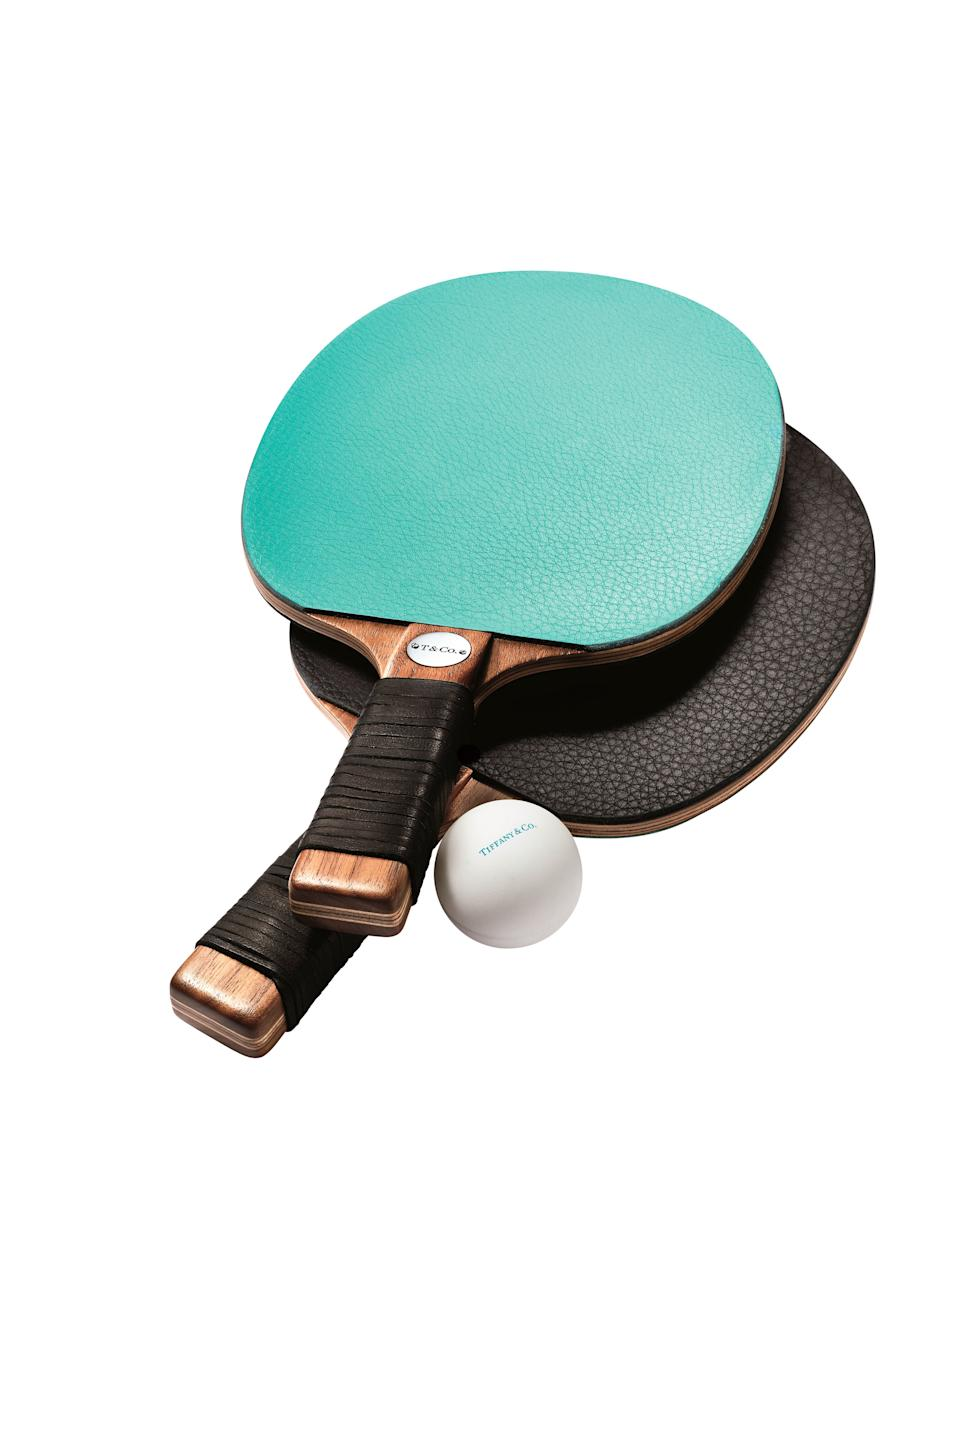 Tiffany & Co. everyday objects table tennis paddles; $700 for a pair. tiffany.com